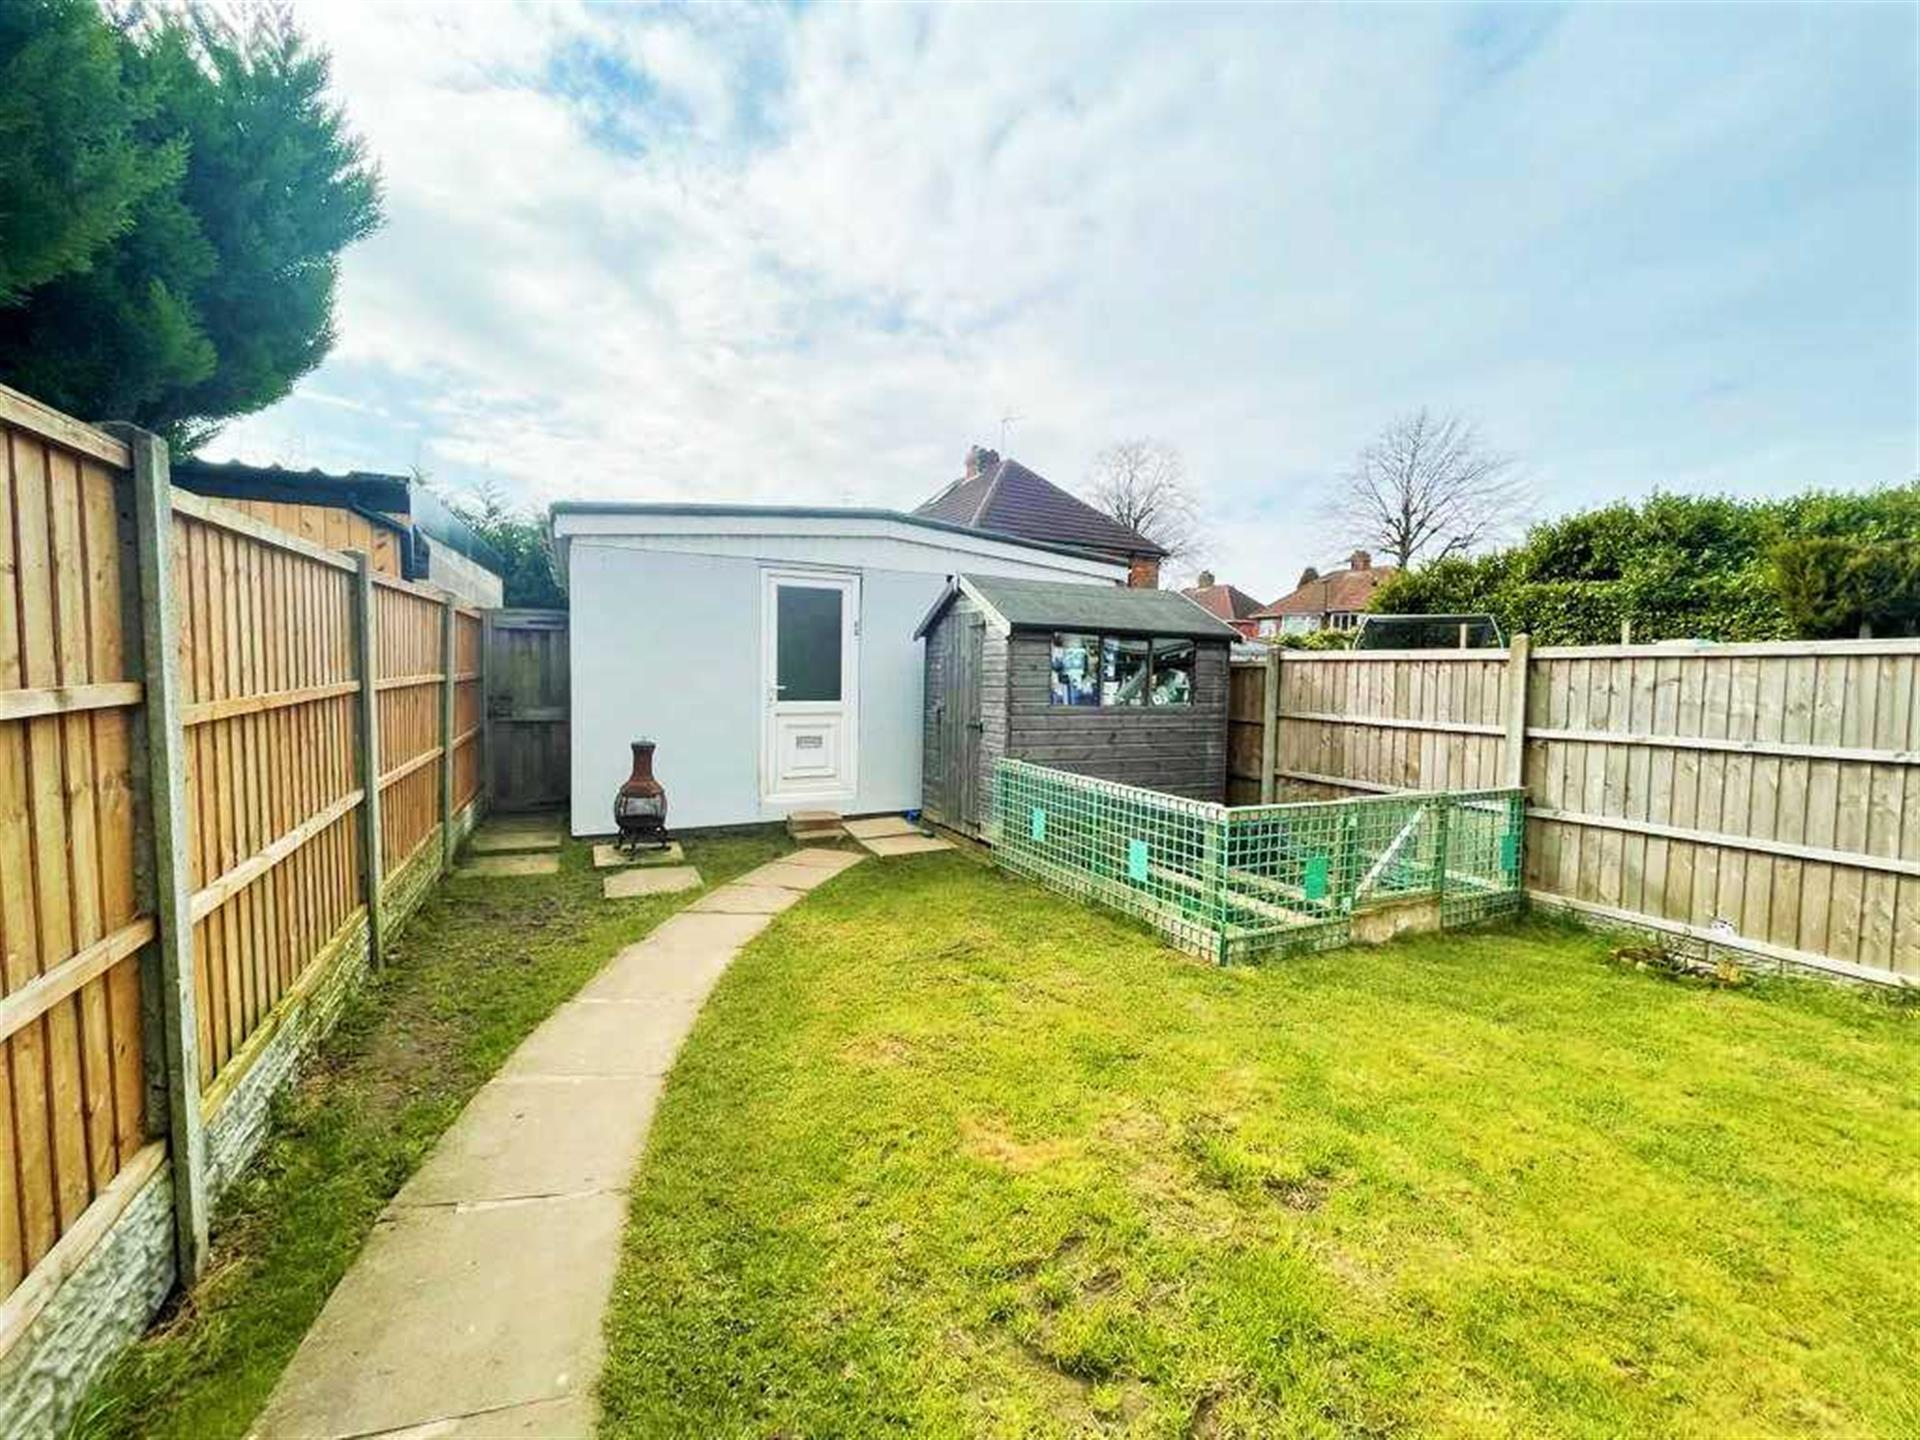 3 Bedroom Semi-detached House For Sale - Image 13